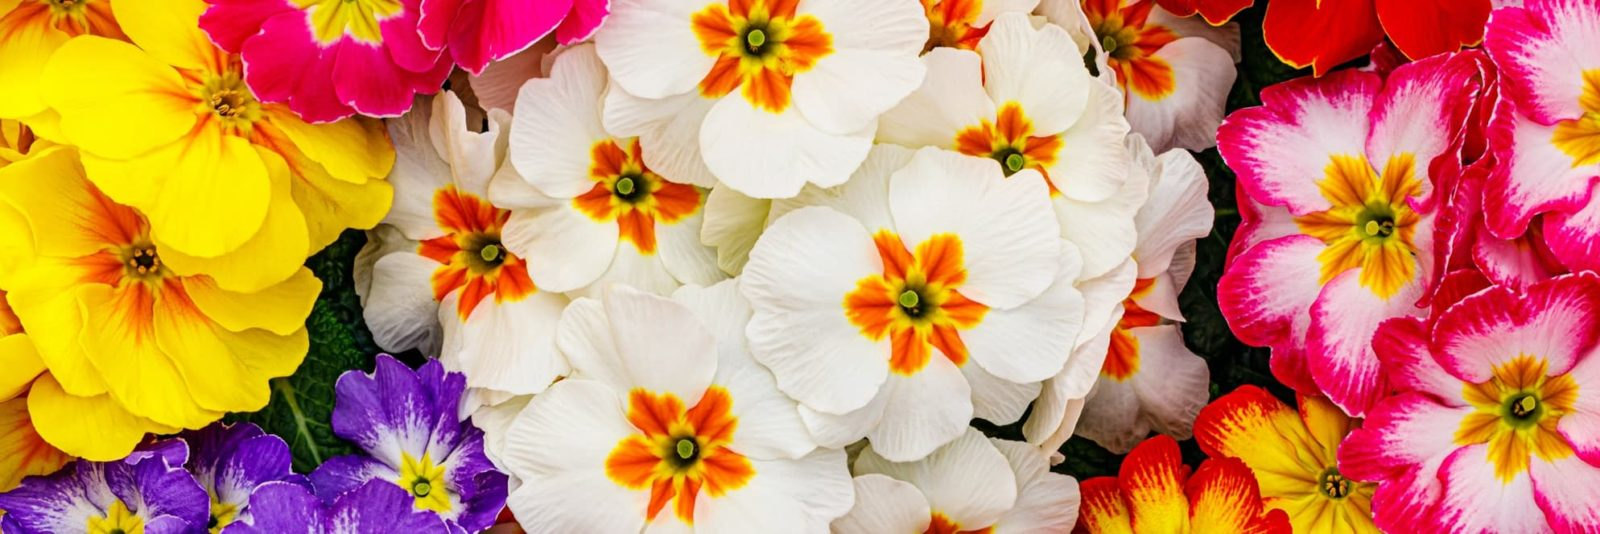 primrose flowers in pink, white, yellow and purple